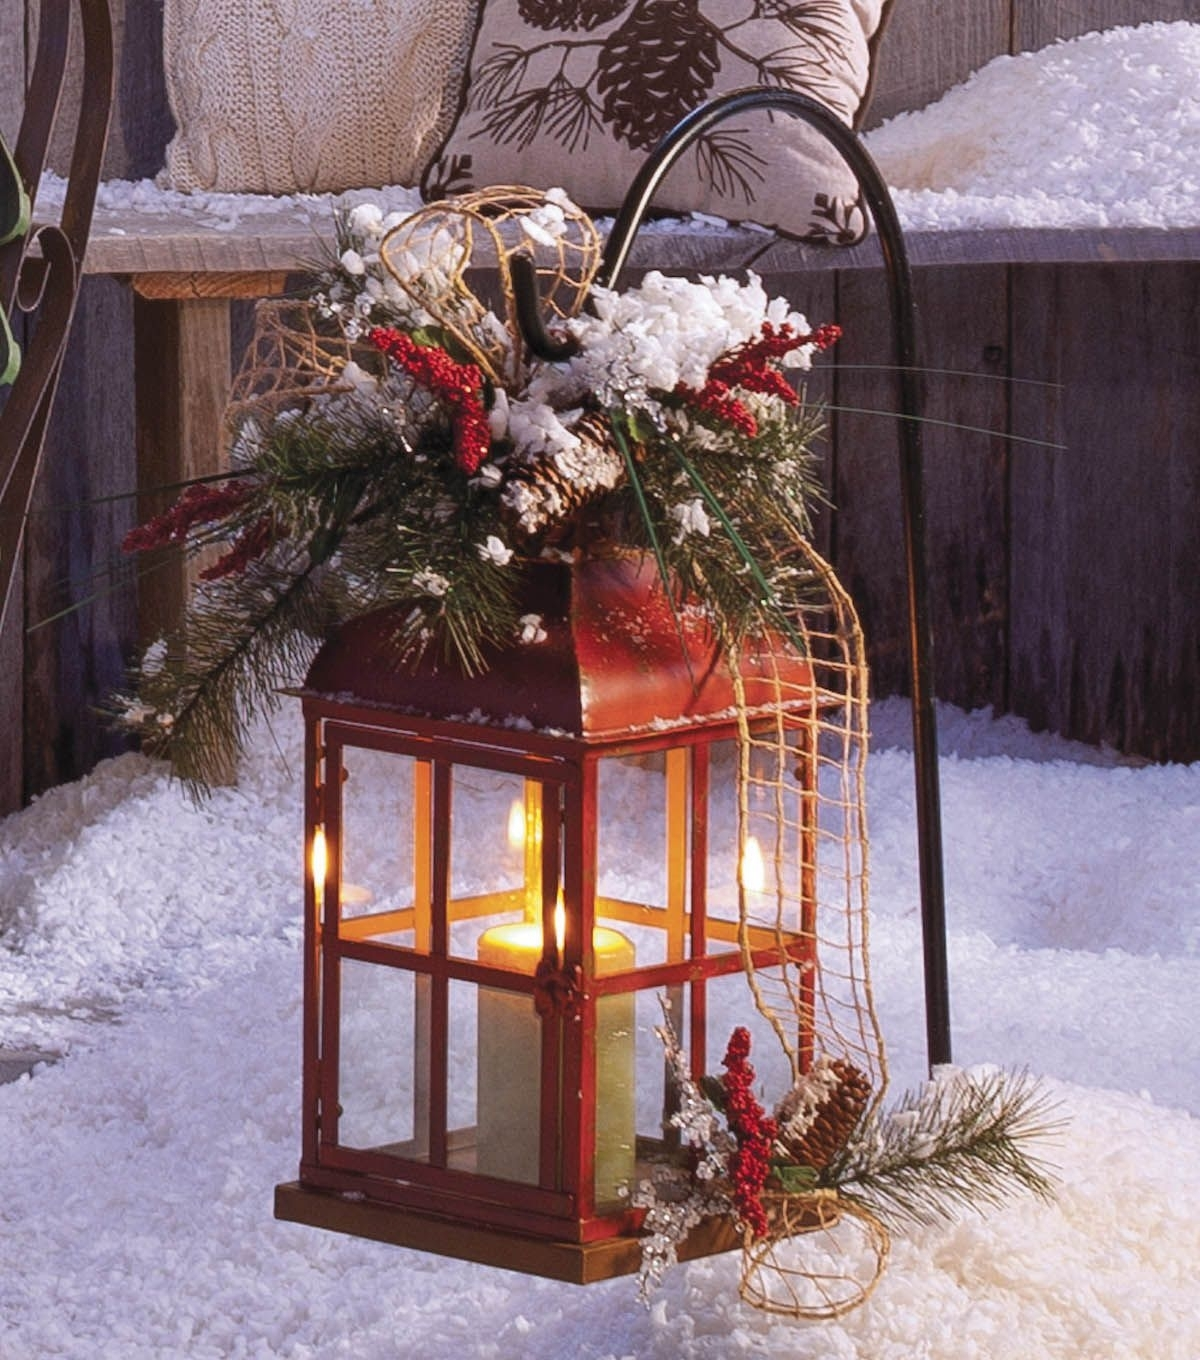 Diy Weather Proor Outdoor Lantern ! After Holidays You Just Take Off Pertaining To Outdoor Holiday Lanterns (View 12 of 20)